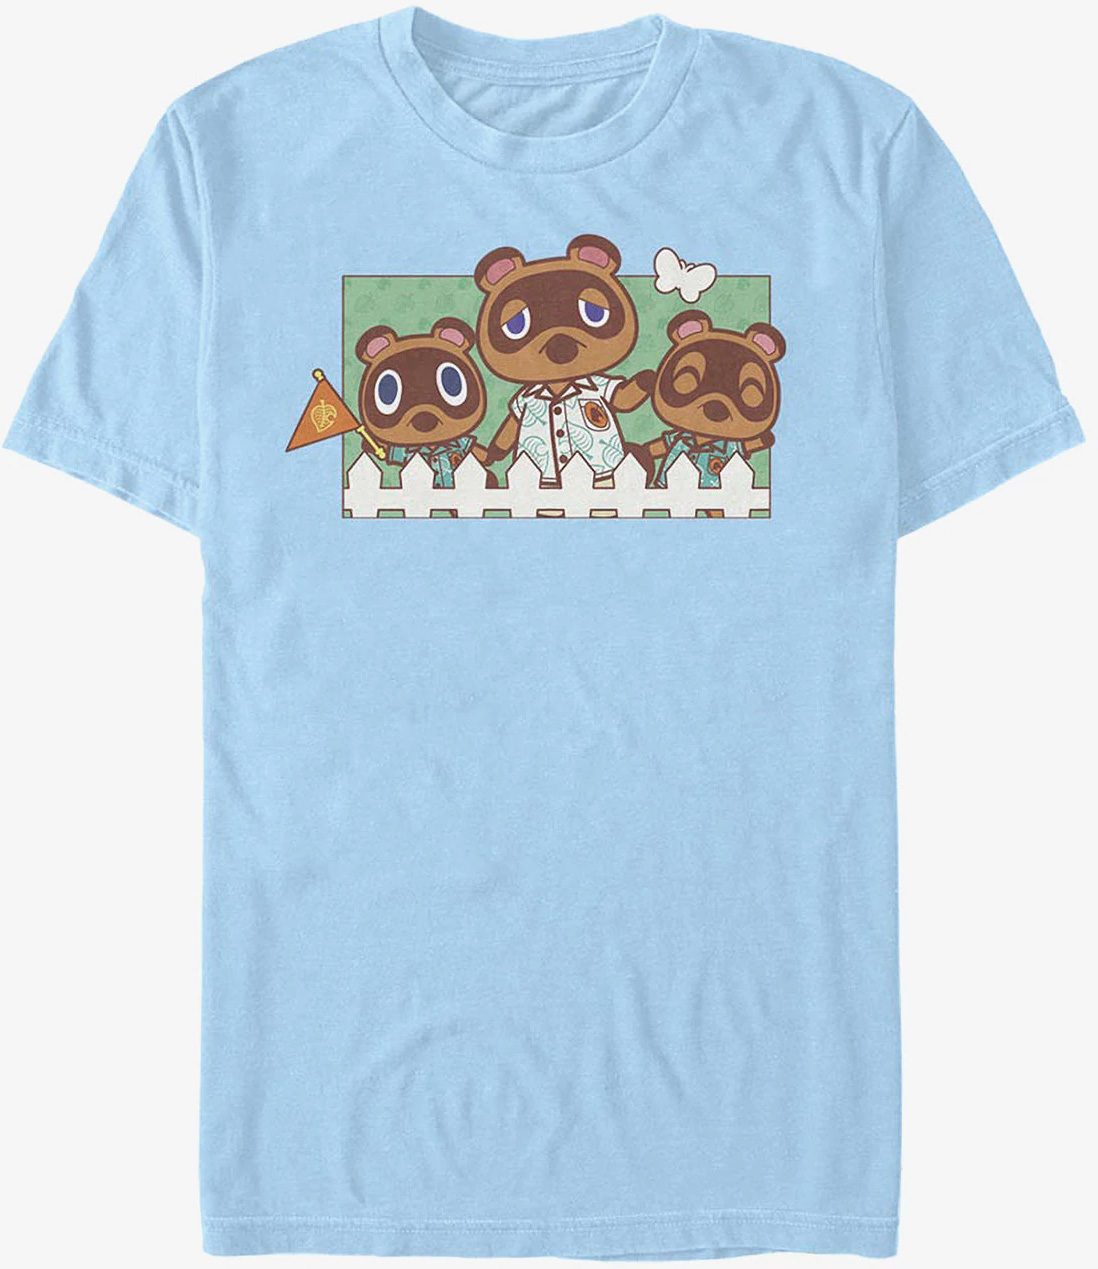 Brand New Animal Crossing New Horizons T Shirts Hoodies And More Available At Hot Topic 20 Off Animal Crossing World